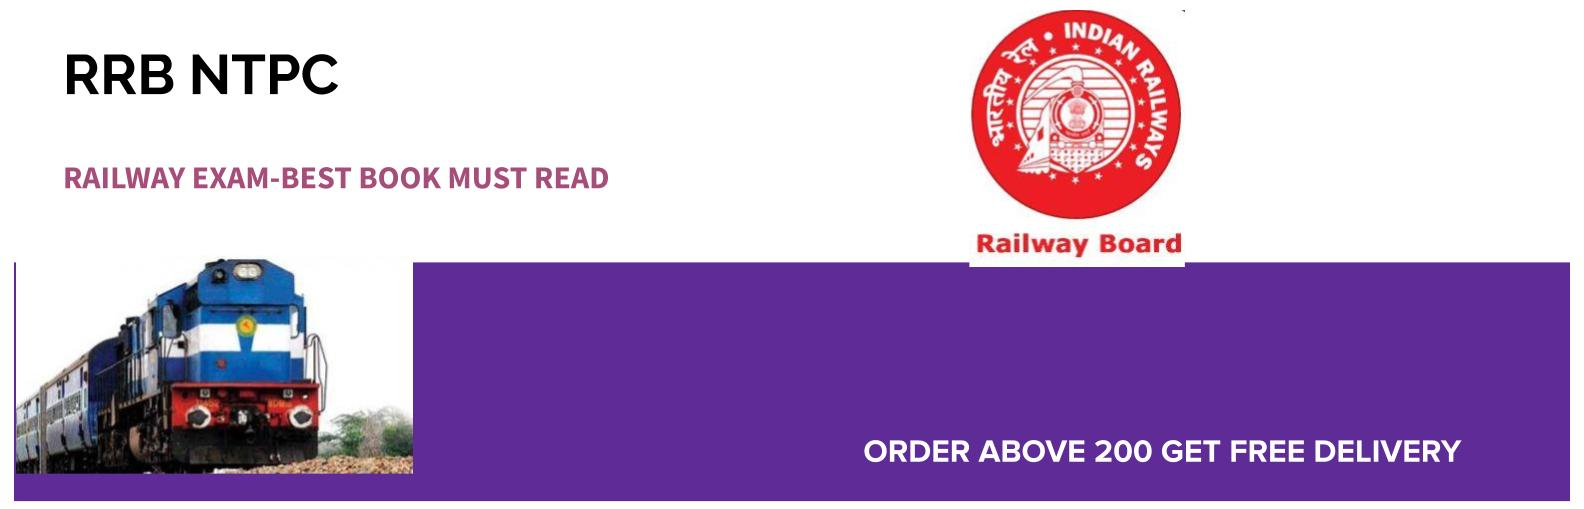 RRB NTPC Railway Exam Best Book Must Read